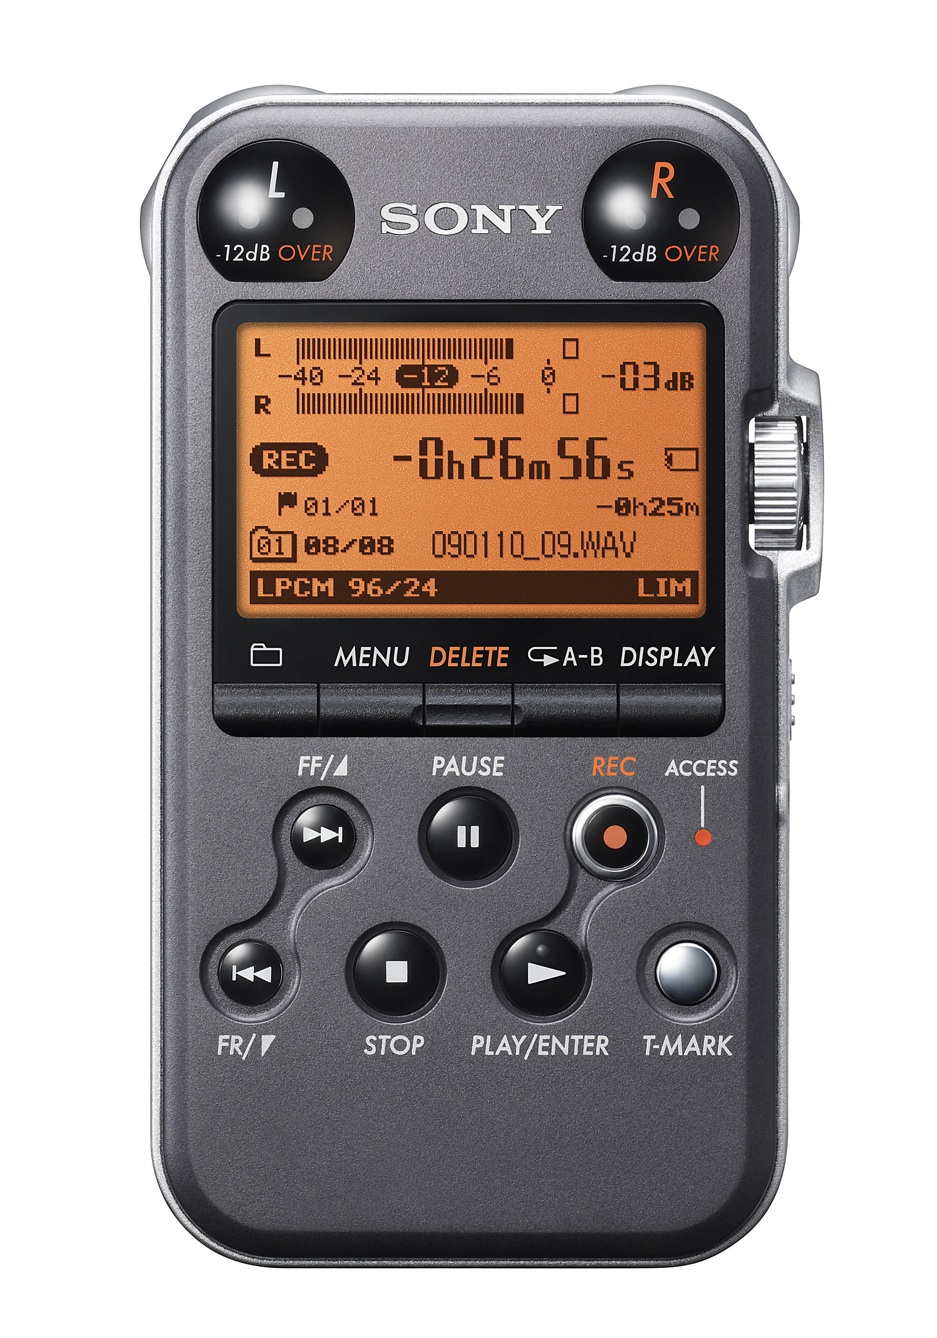 everything audio network home recording review sony pcm m10 digital recorder player. Black Bedroom Furniture Sets. Home Design Ideas